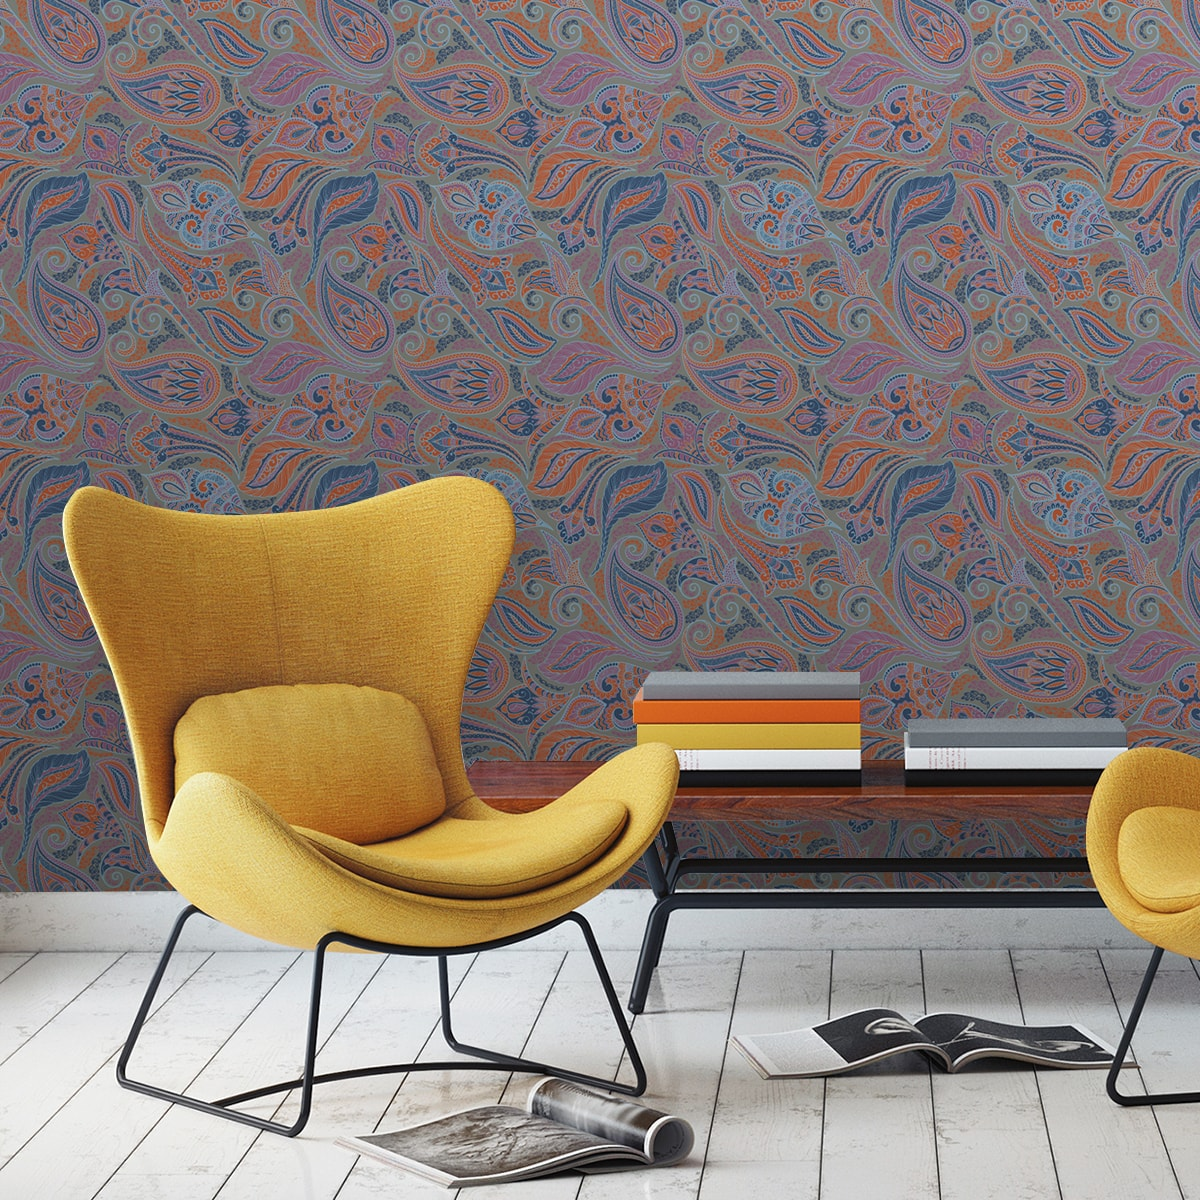 Edle Wandfarben Graue Edle Design Tapete Quotgrand Paisley Quot Wohnzimmer Gmm